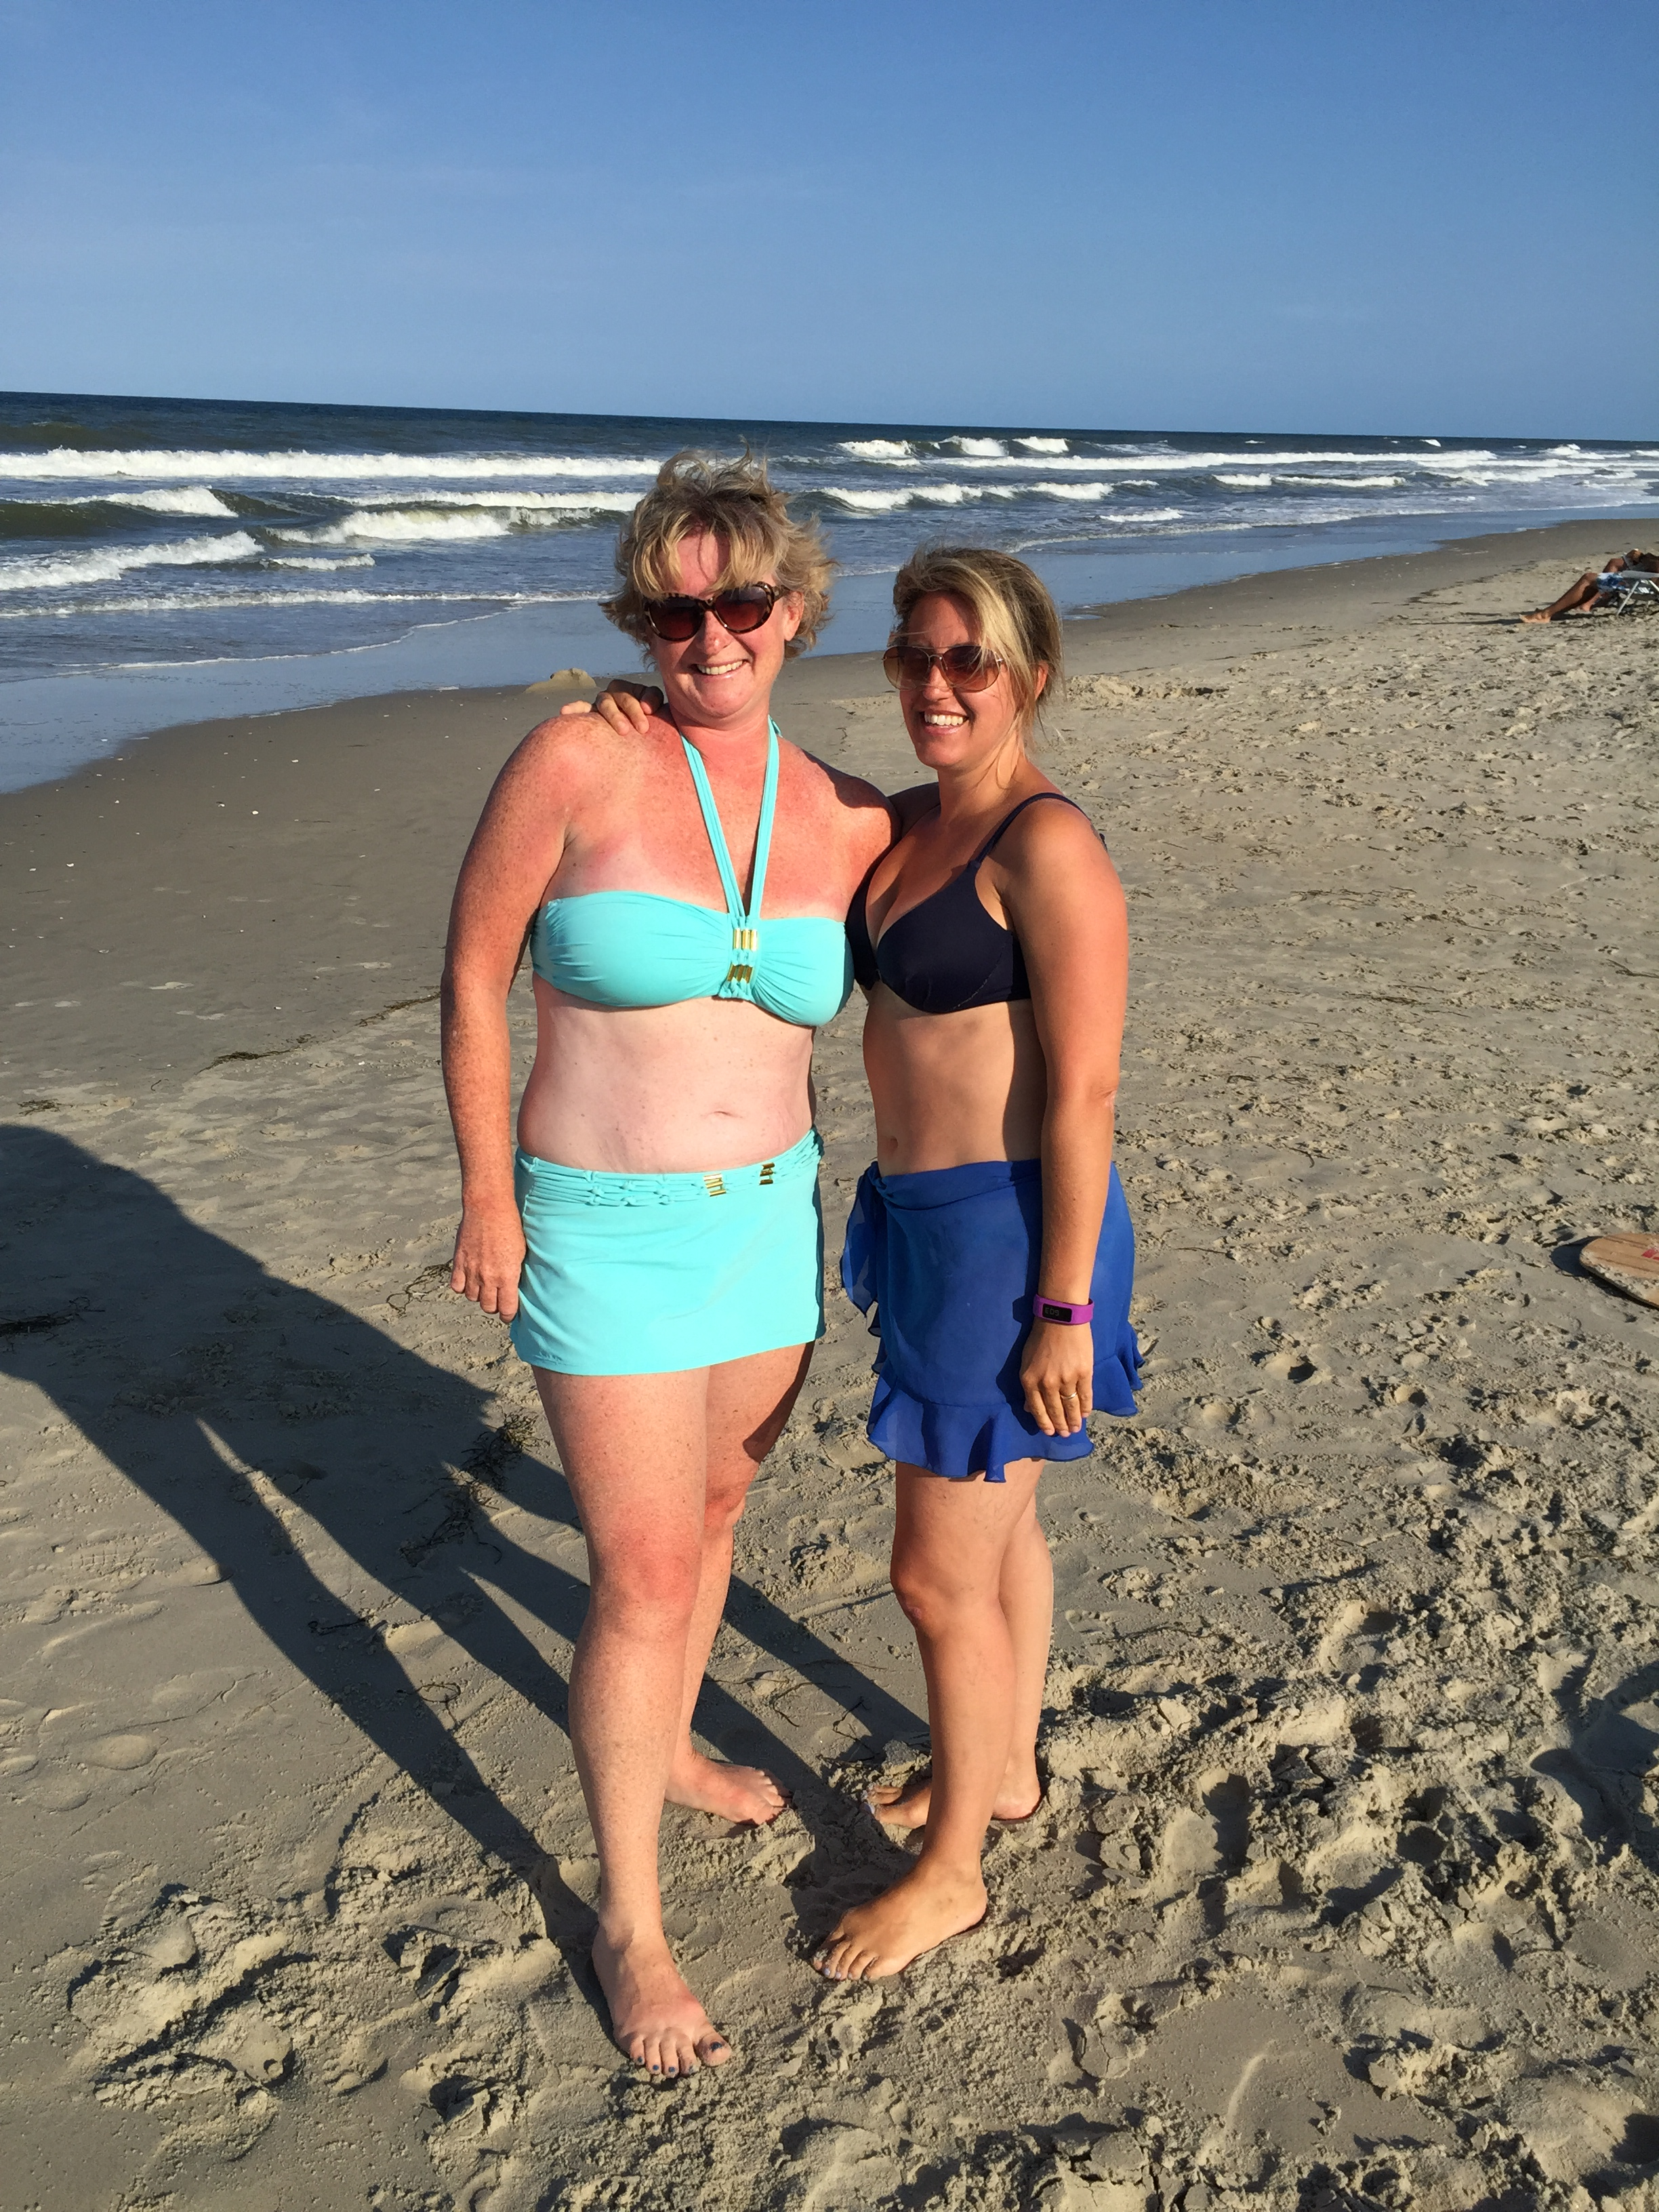 12 reasons why going on a beach vacation with your BFF is the best thing ever